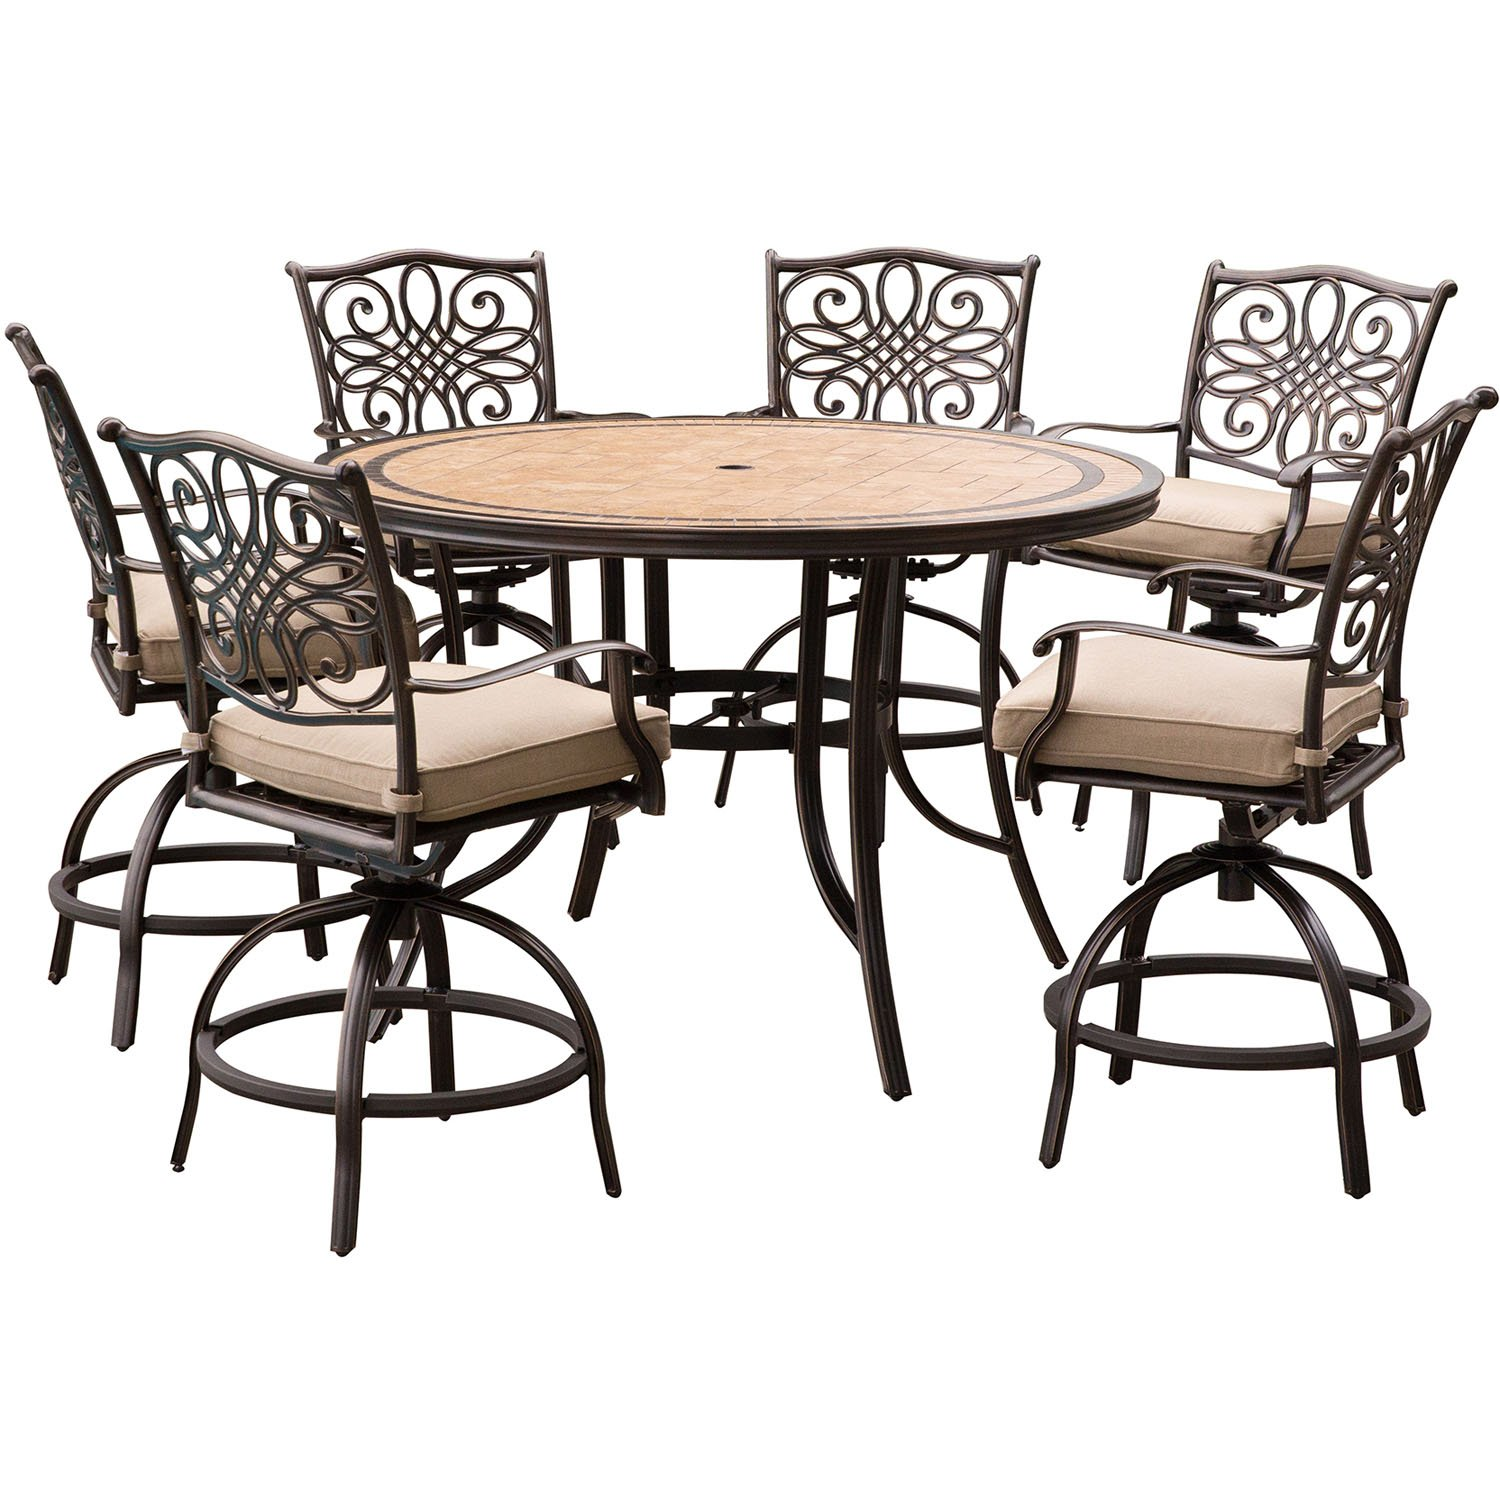 Hanover mondn7pcbr c p monaco 7 piece high dining set in tan with a 56 in tile top table and 6 swivel chairs outdoor furniture